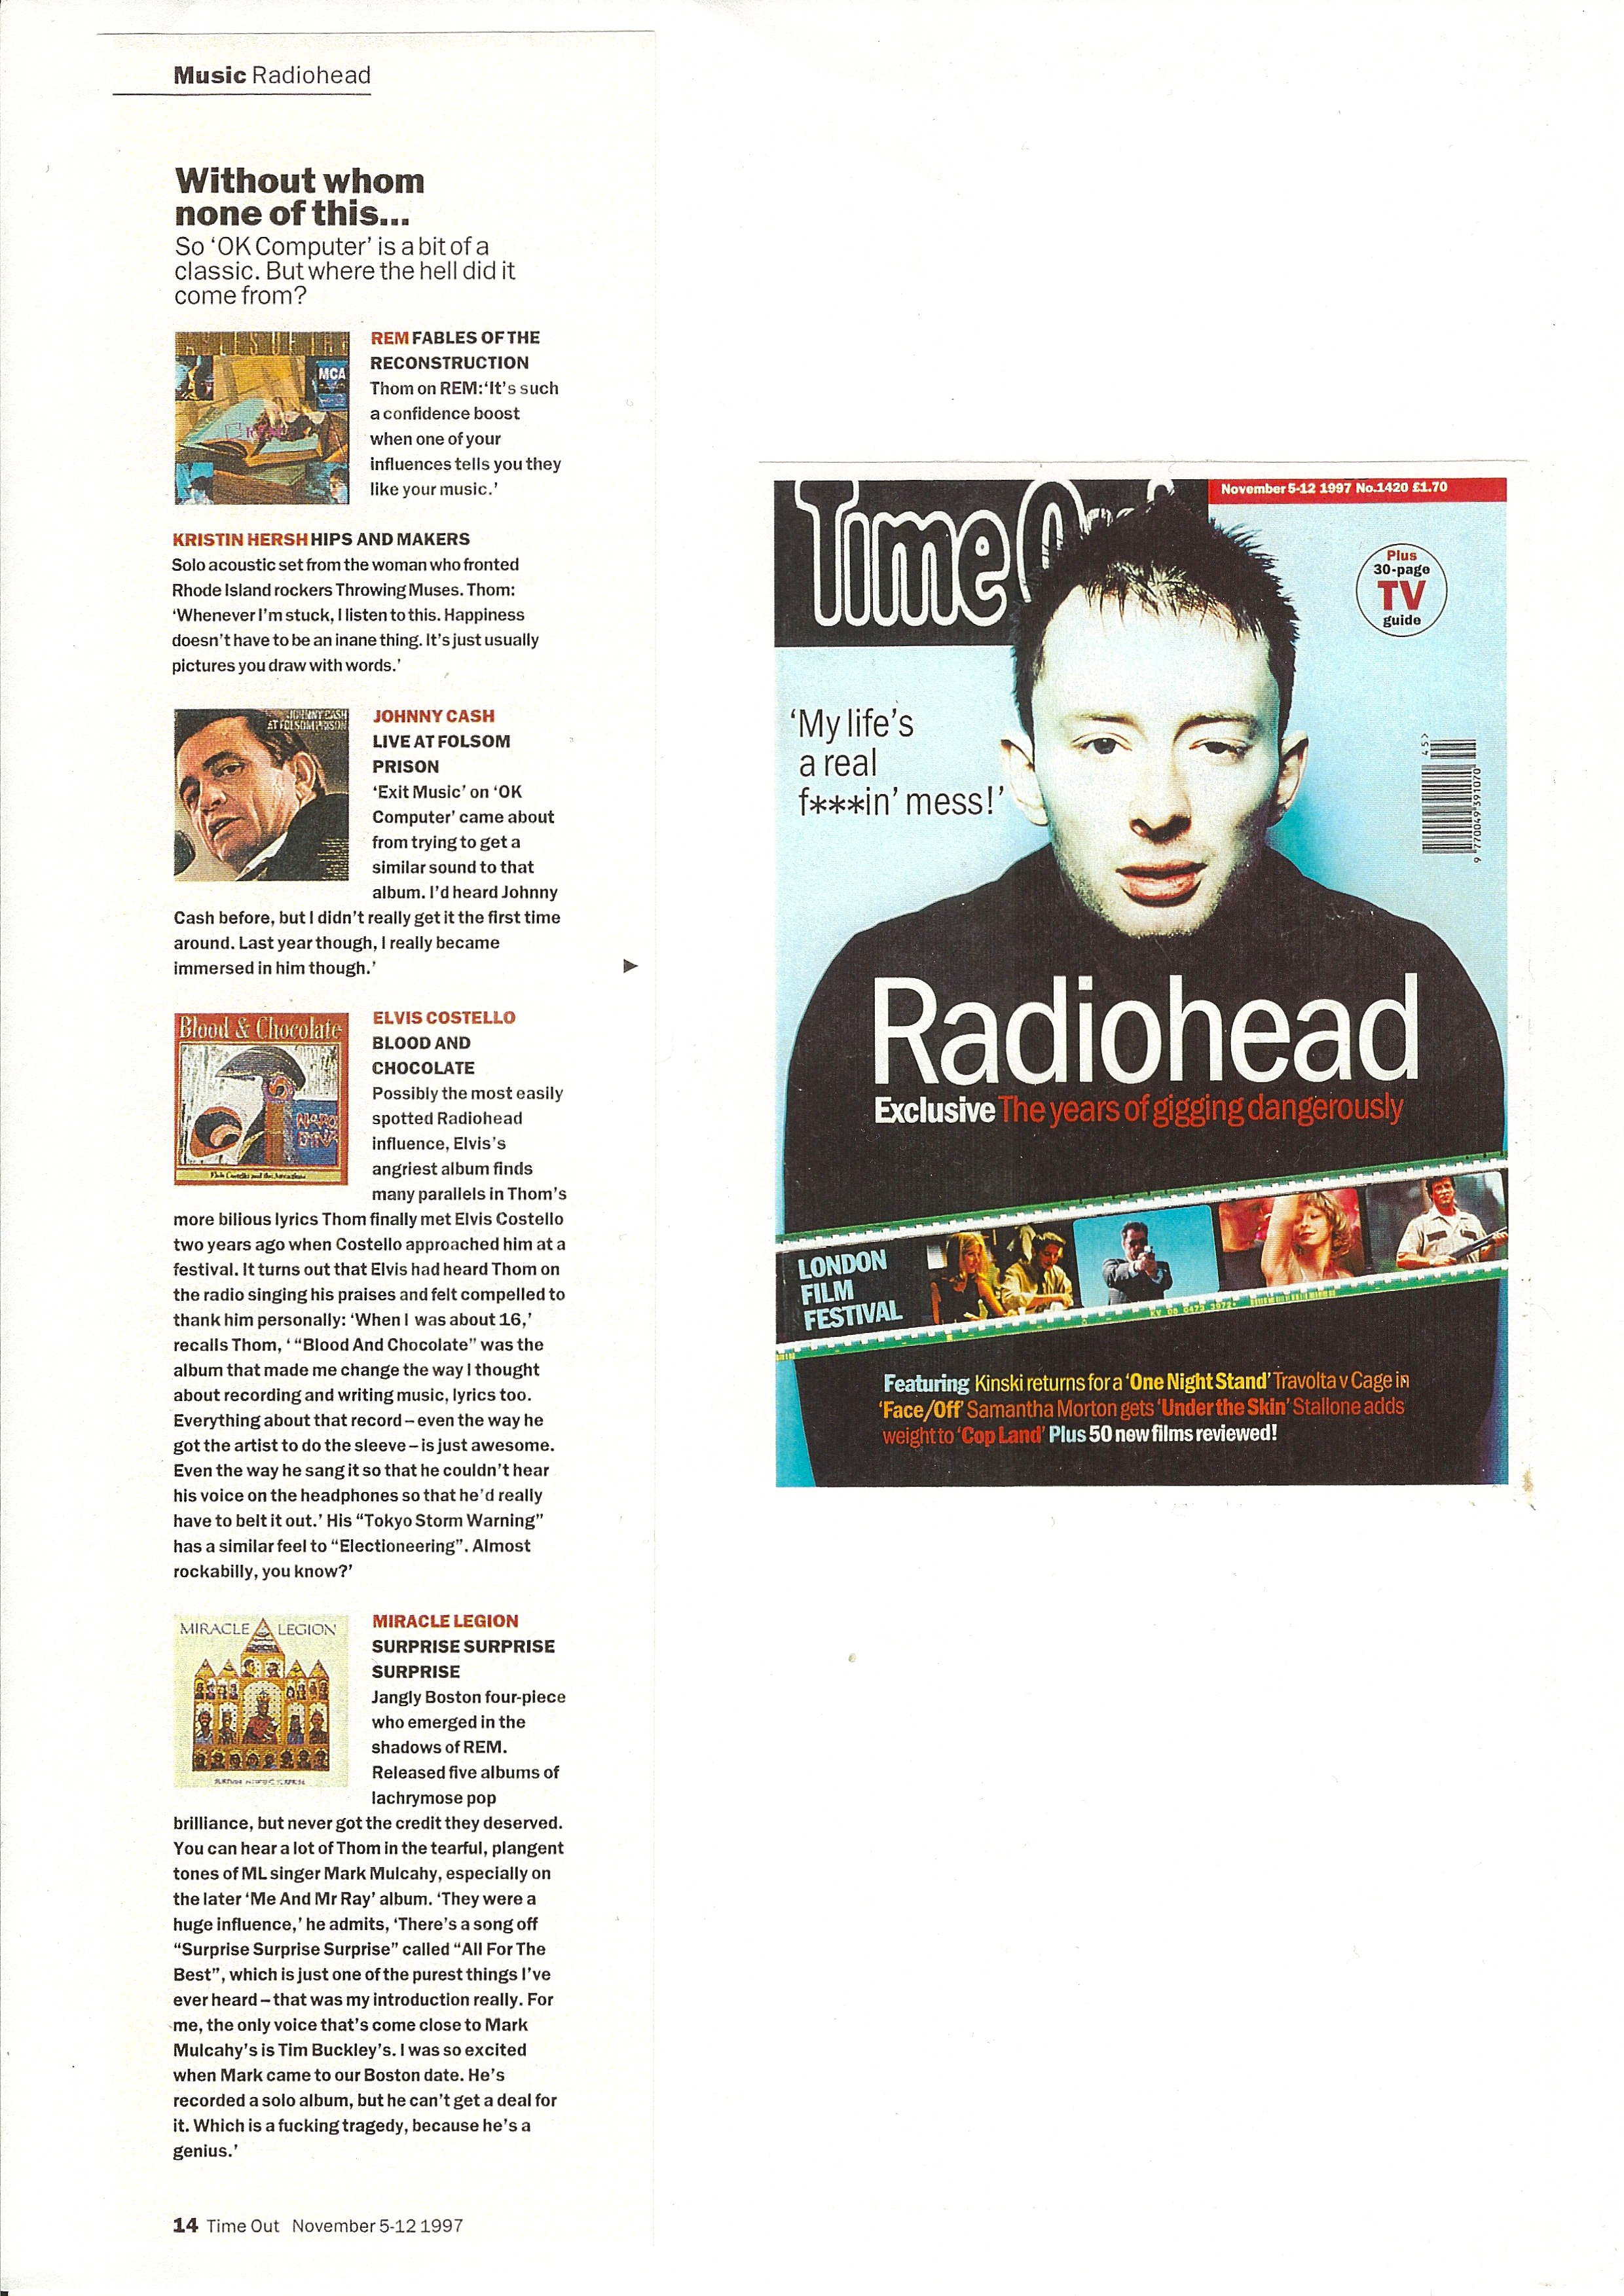 TIME OUT Magazine feature on Thom Yorke November 1997